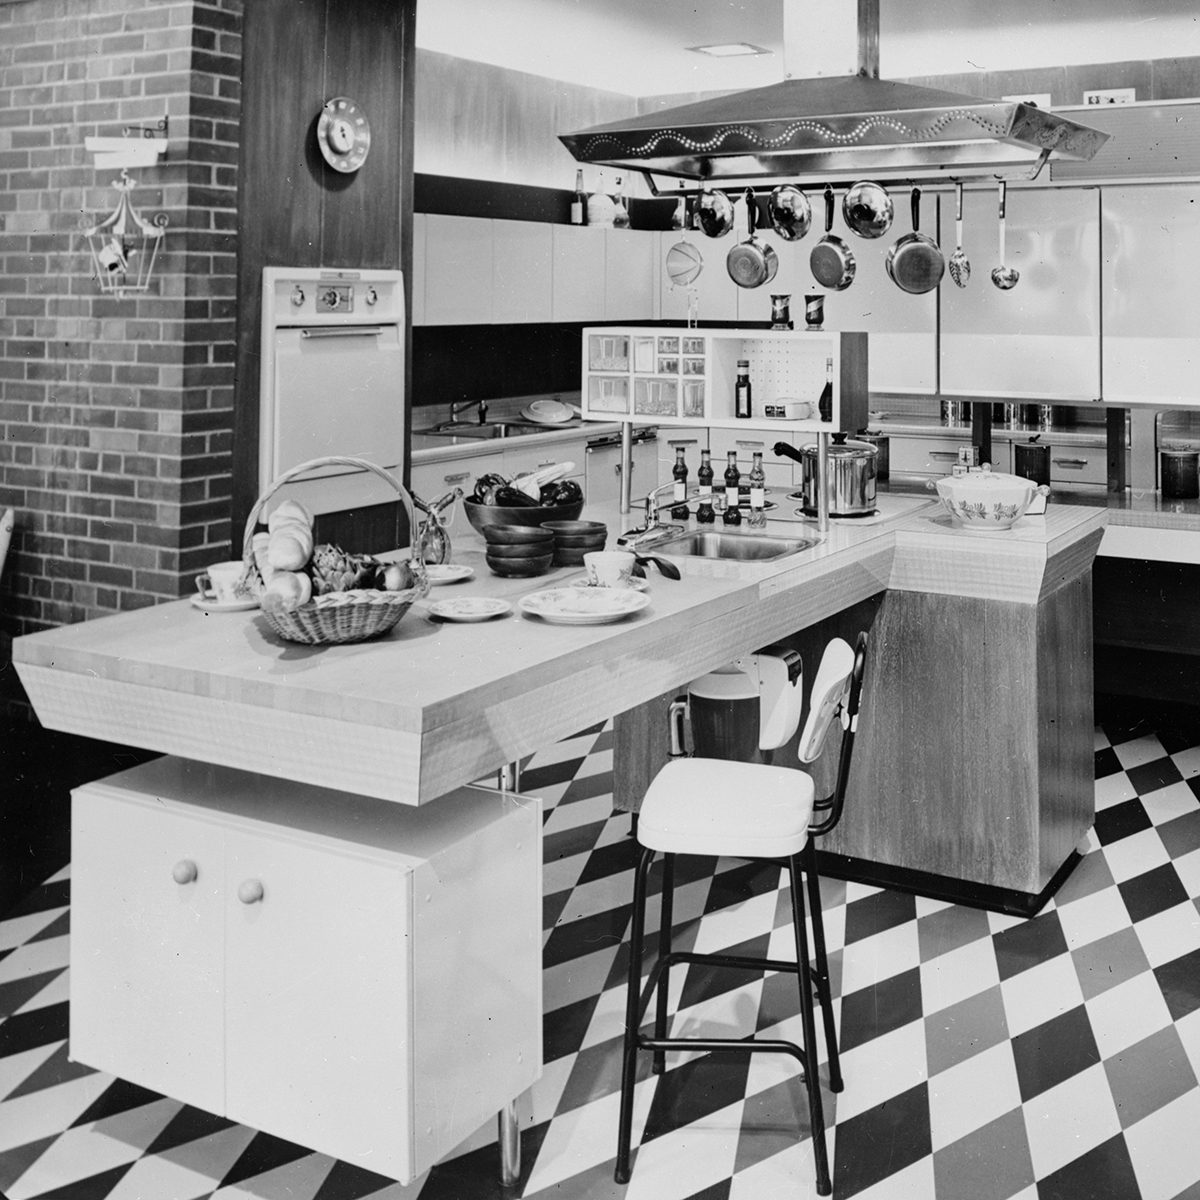 November 1956: General Electric's modern kitchen 'Gourmet's Delight'; all the appliances are grouped together for convenience and the position of the work surfaces has been carefully considered. (Photo by Keystone Features/Getty Images)